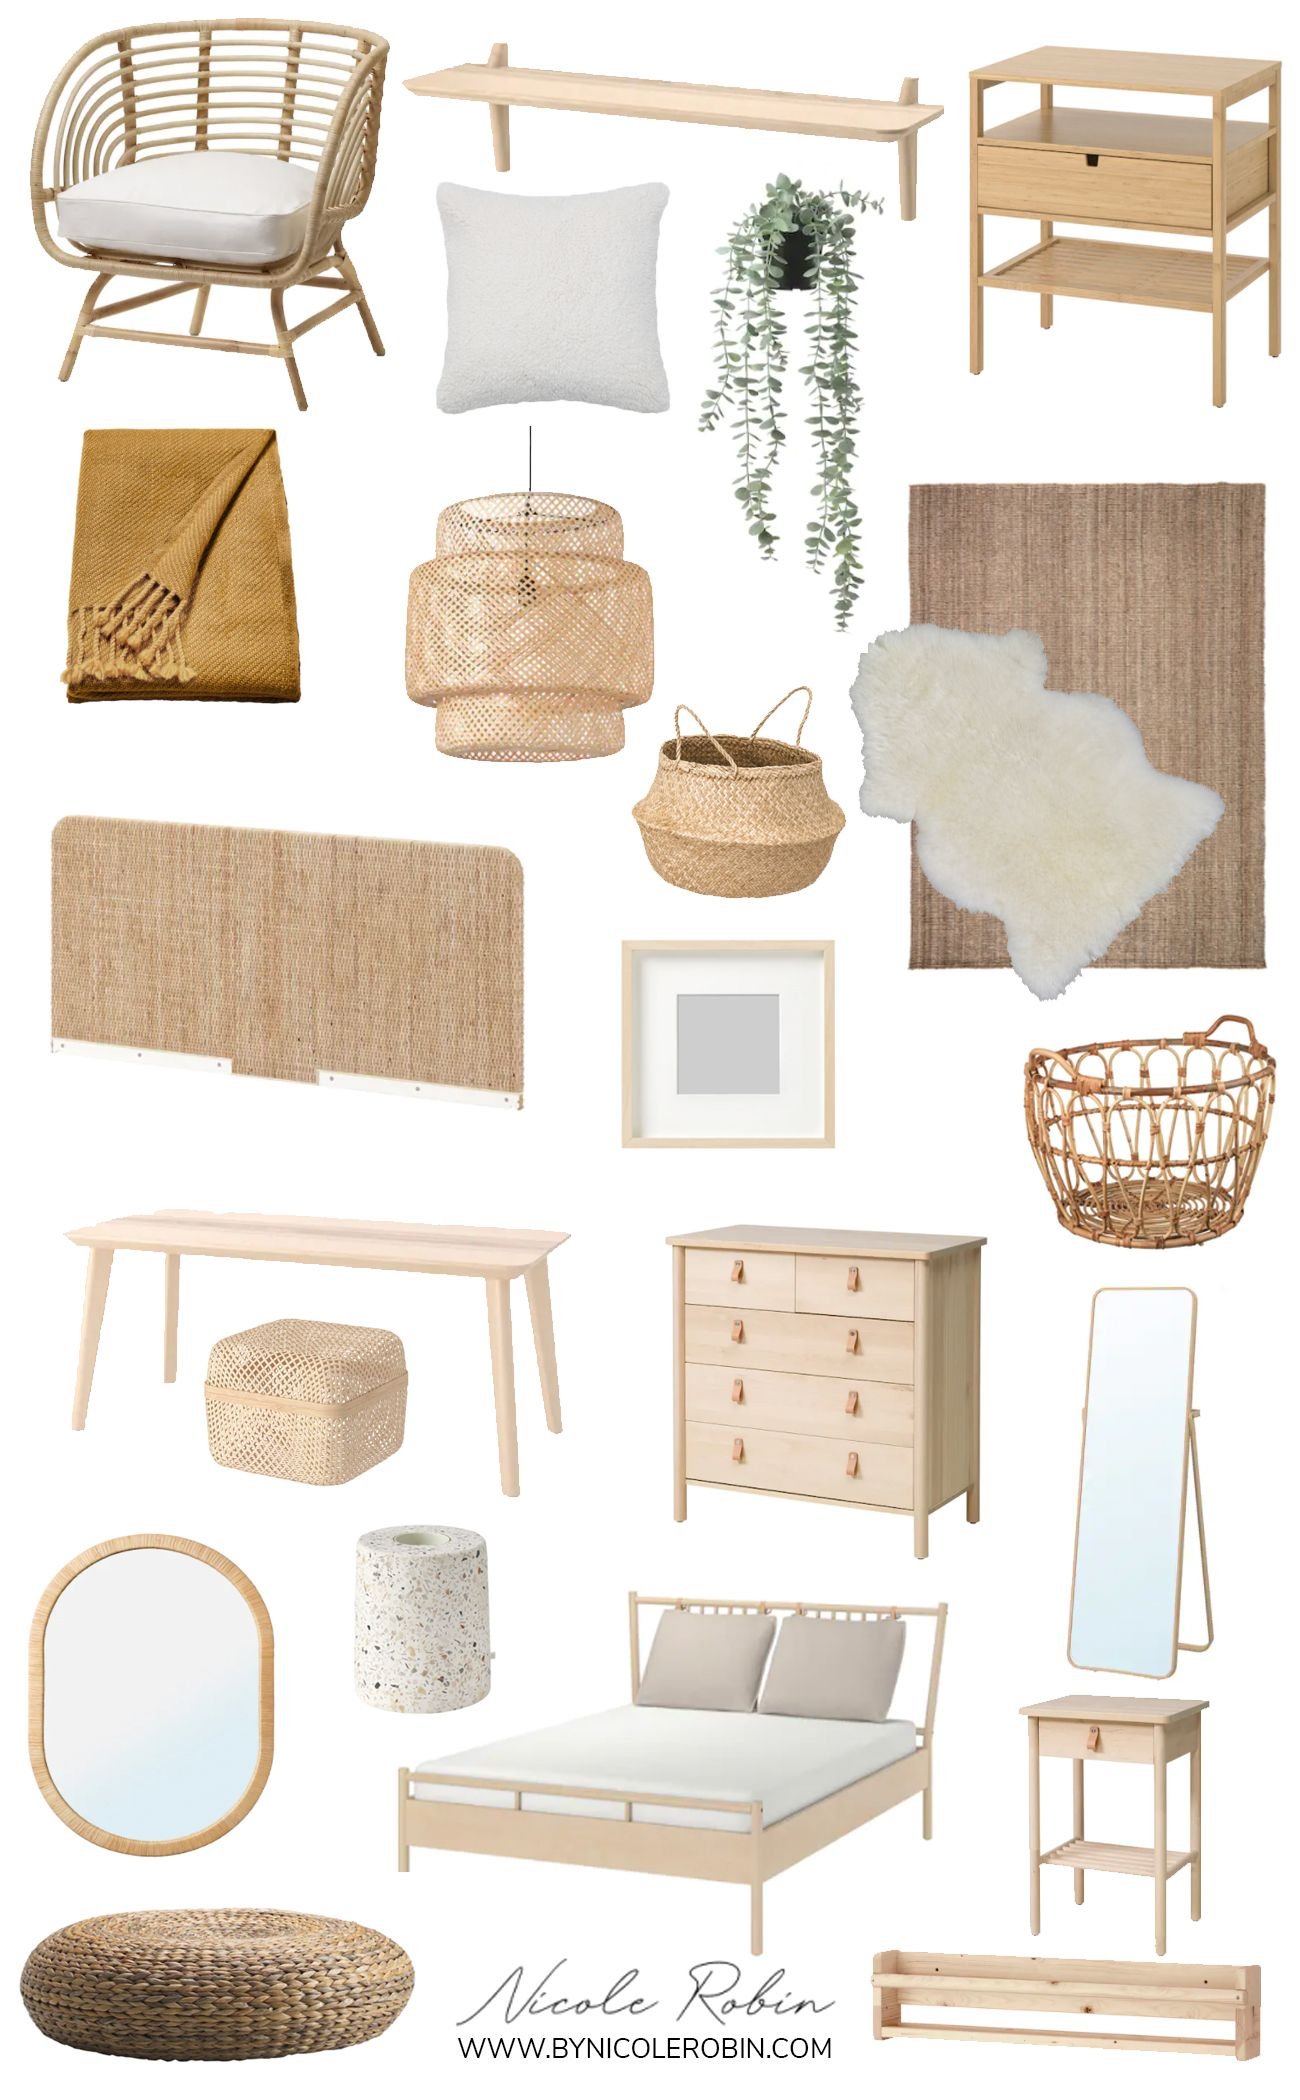 The Best of IKEA: Boho Home Finds